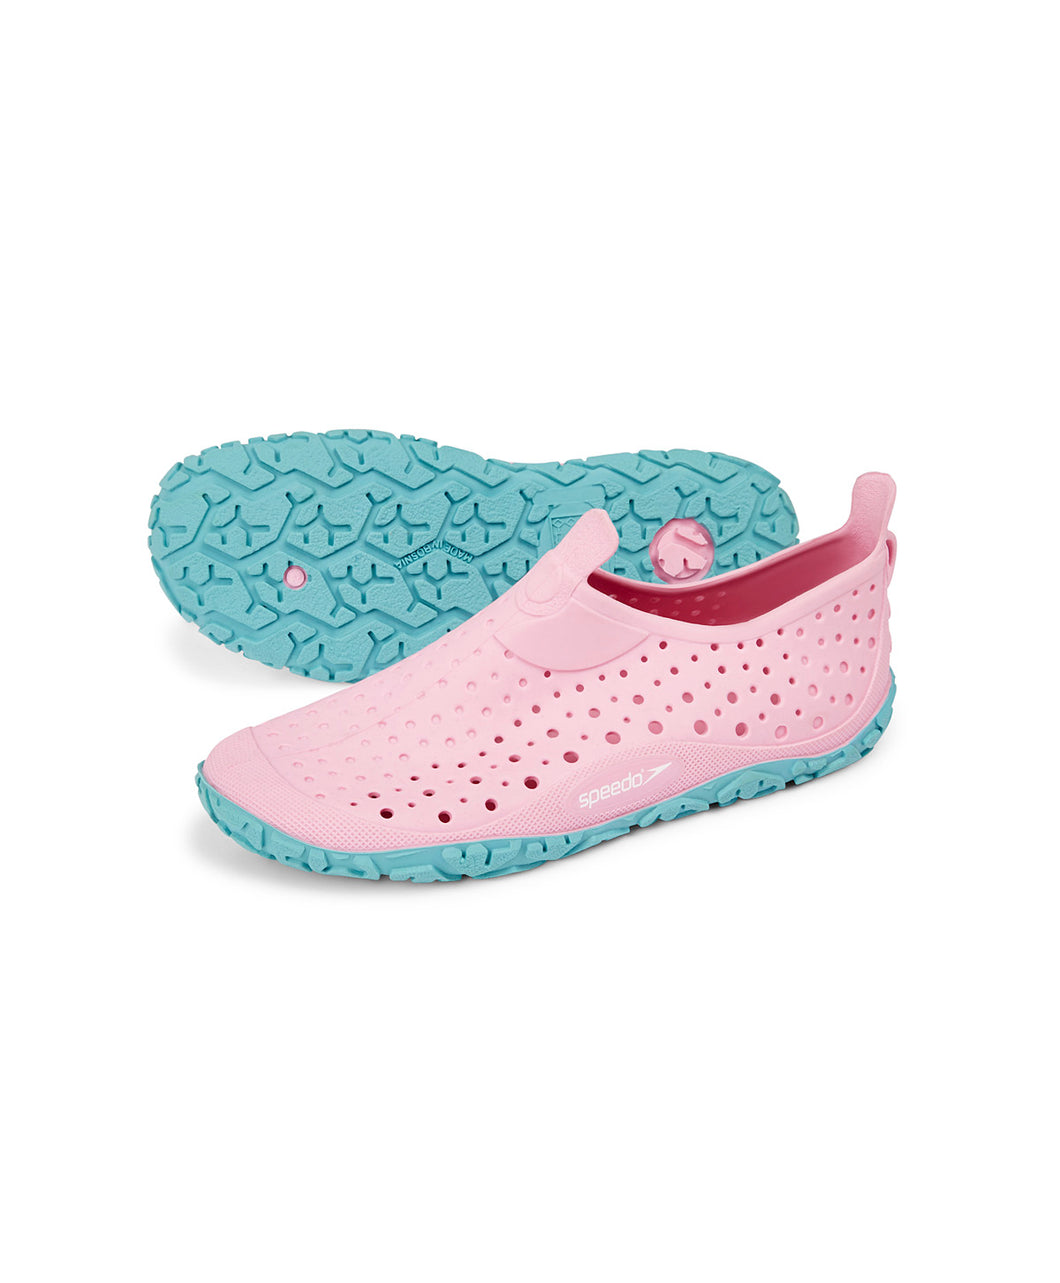 Infant Female Jelly Aqua Shoes